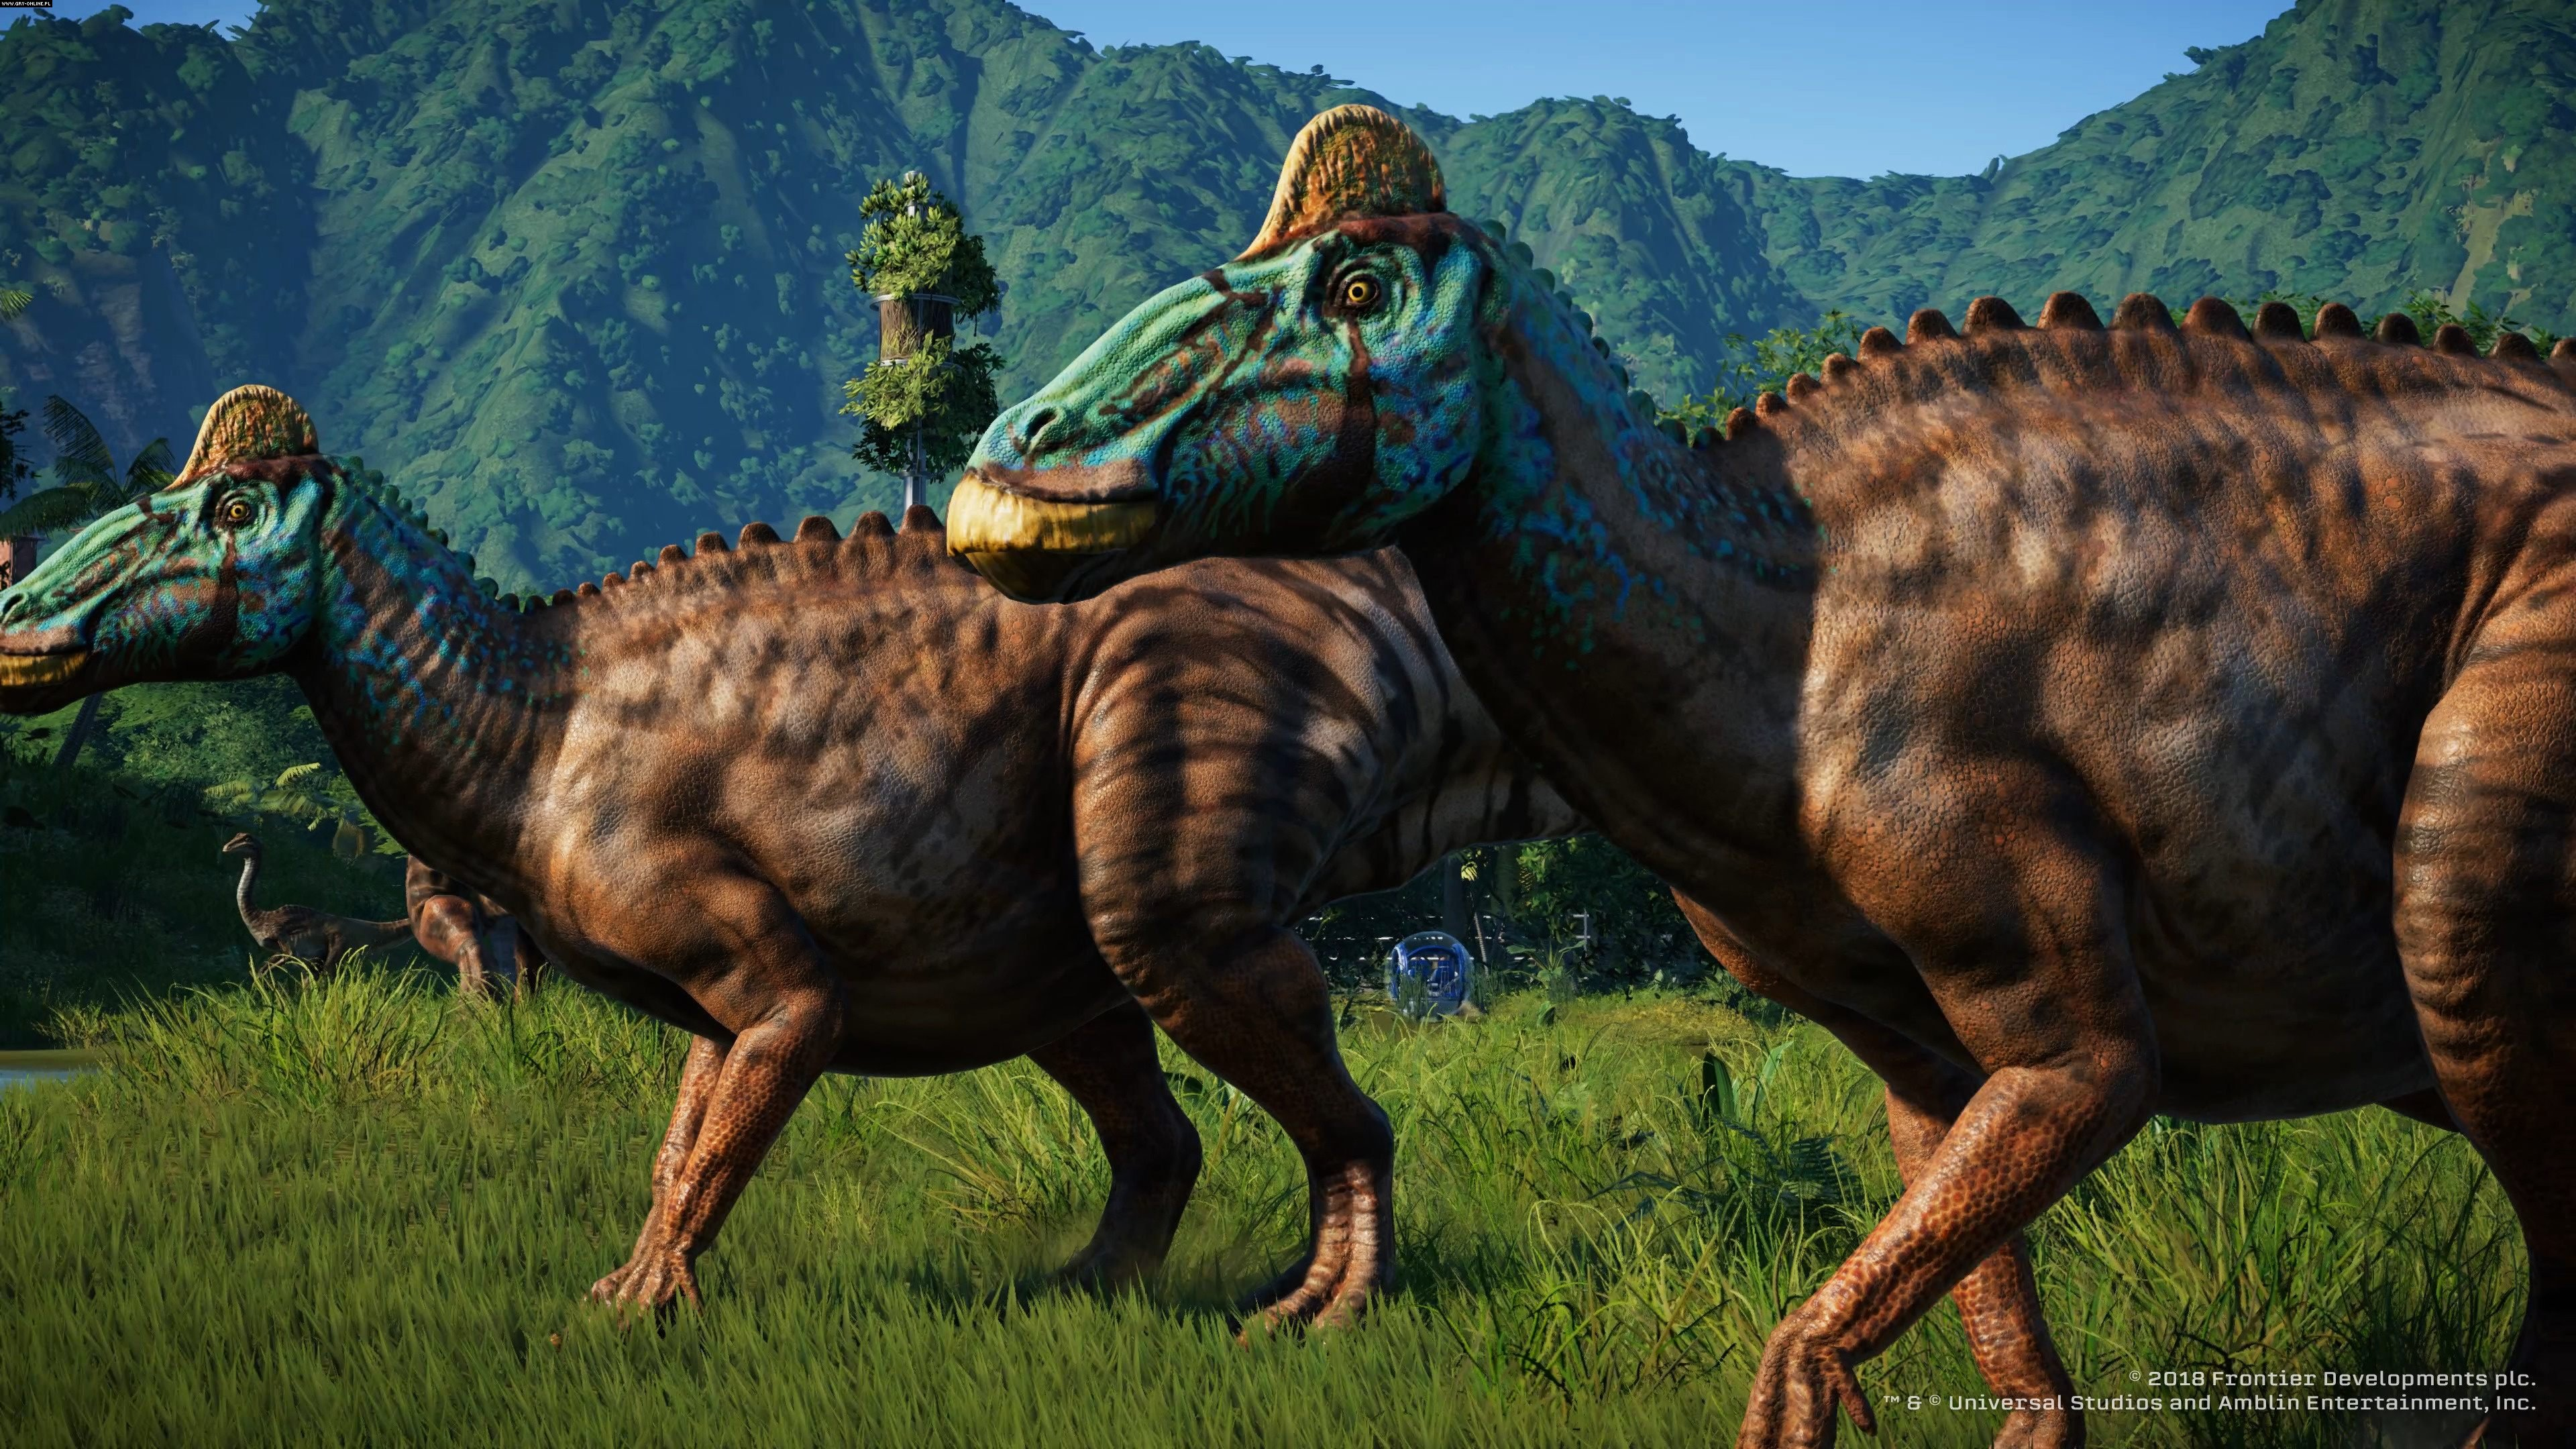 Jurassic World Evolution PC, PS4, XONE Games Image 19/28, Frontier Developments